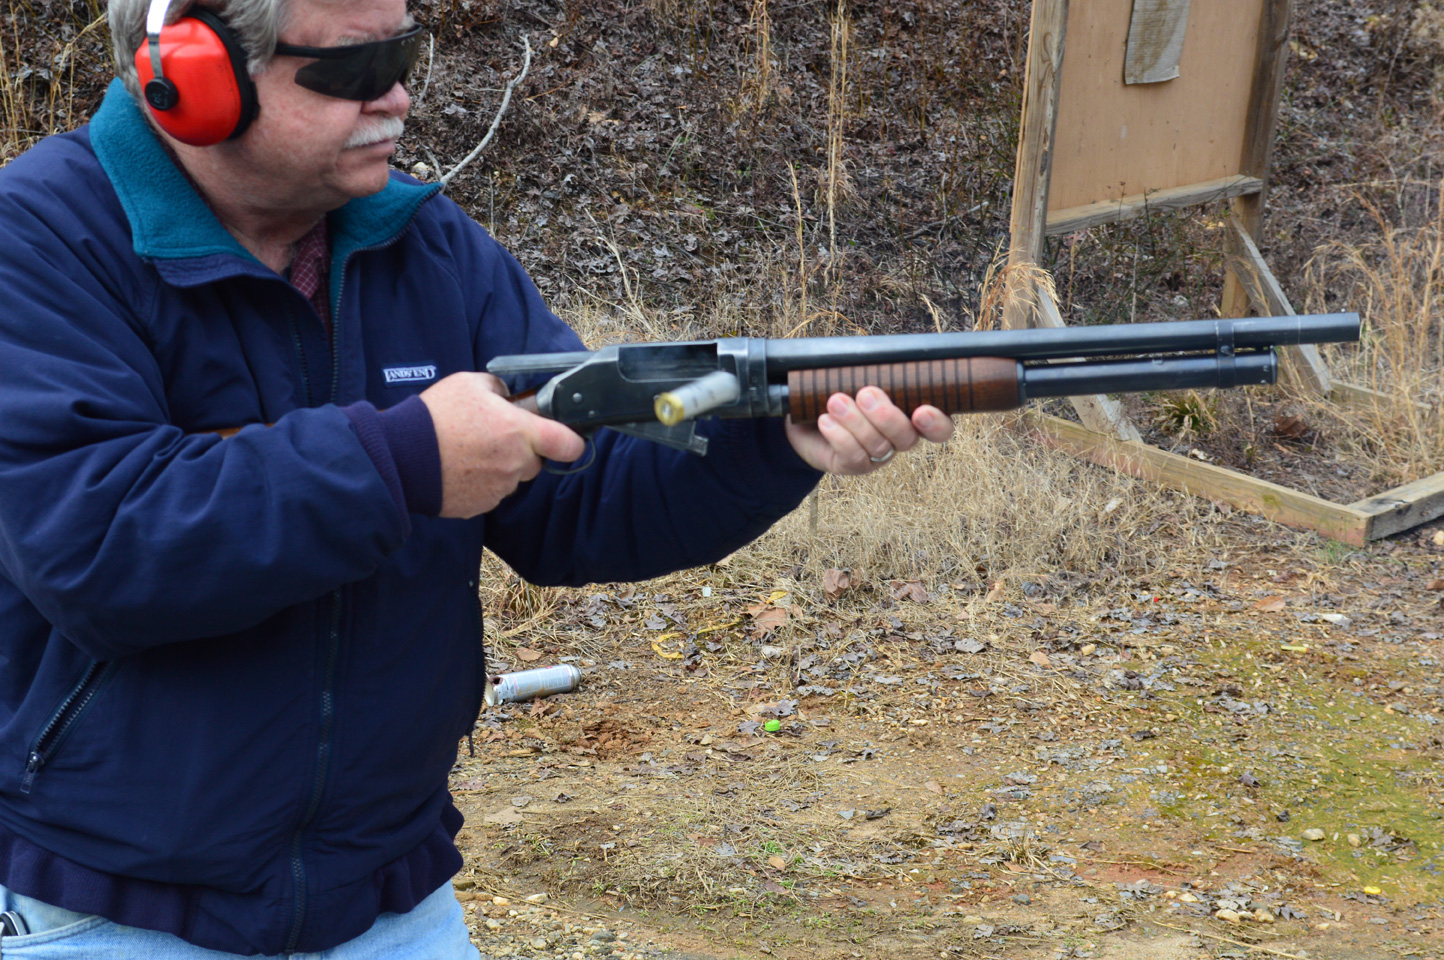 Bob Campbell rapidly firing the Norinco Wild Bunch shotgun